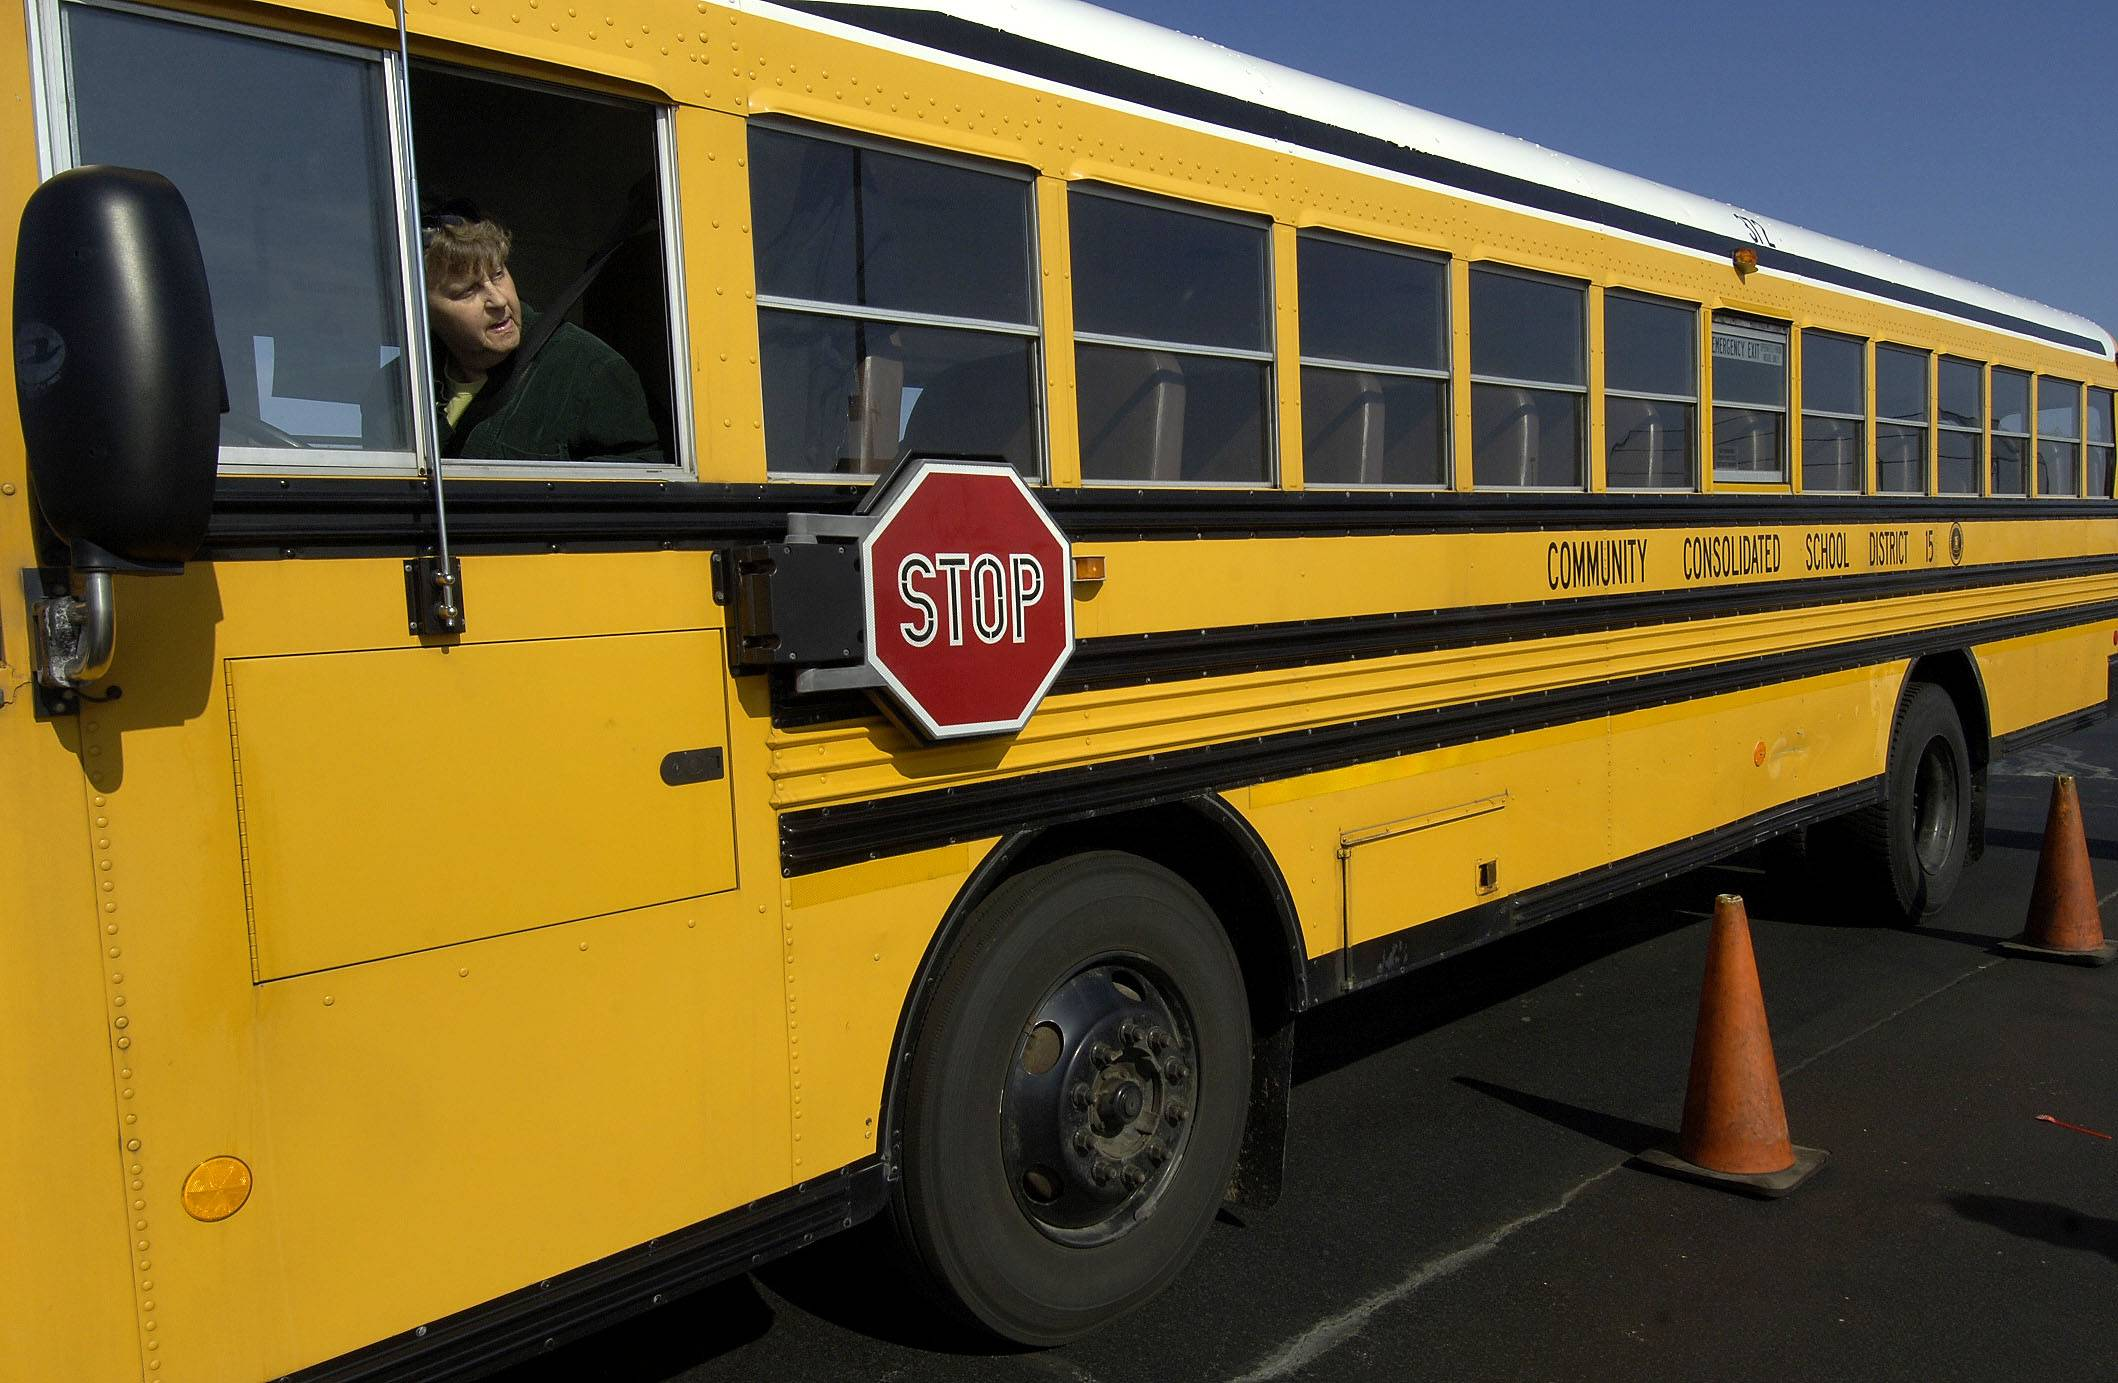 Palatine Township Elementary District 15 will install GPS technology onto its fleet of school buses in time for the start of the next school year. The technology will allow parents to track their children's buses from home.